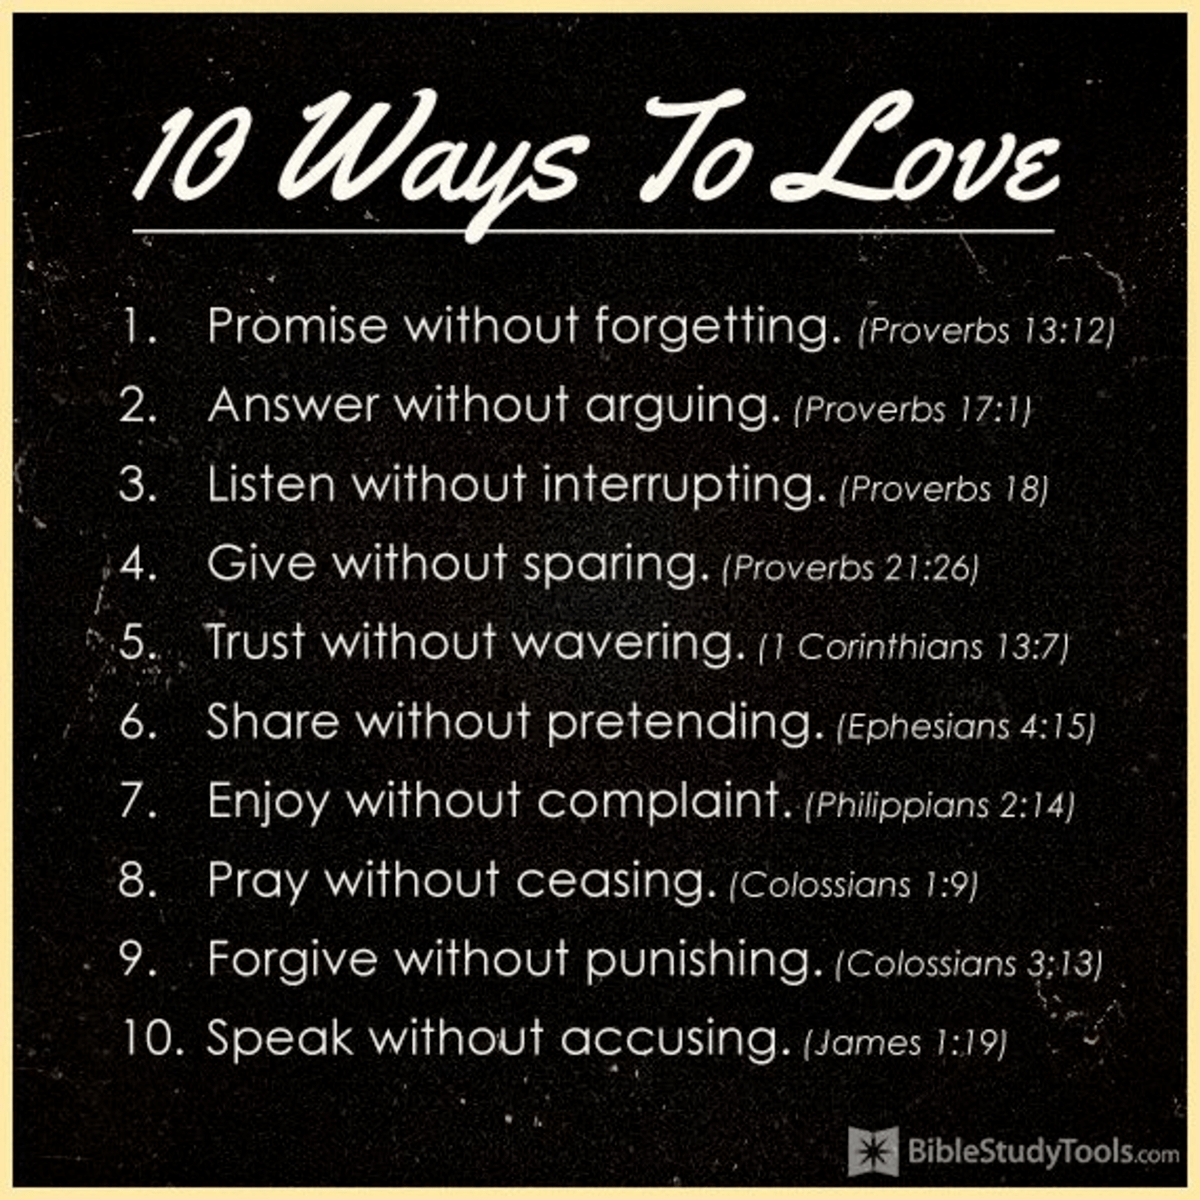 10 Ways to Love - Inspirations